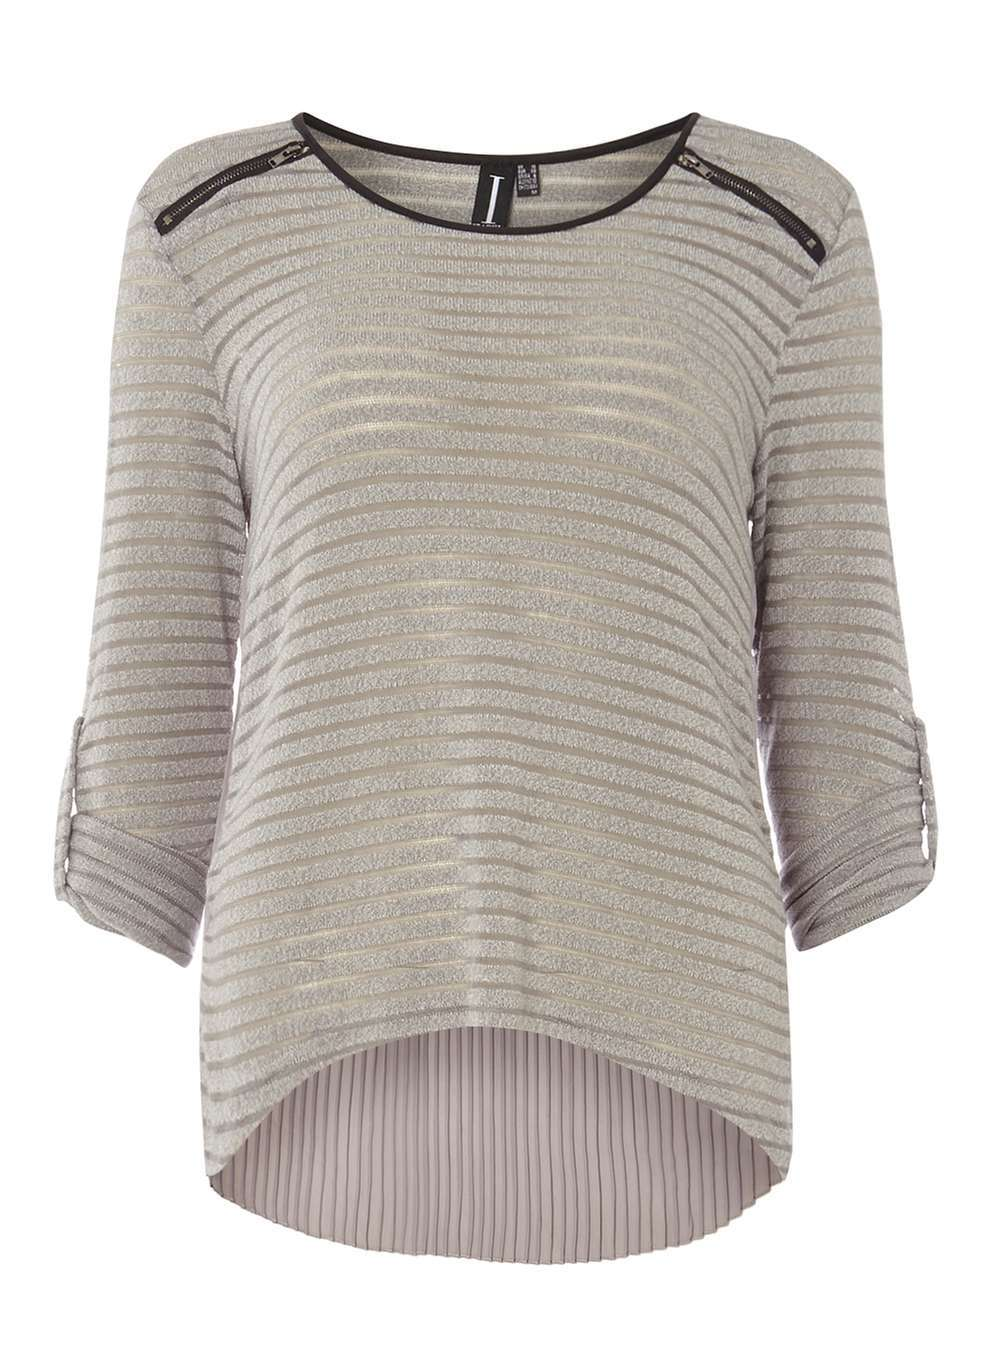 Womens **Izabel London Grey Top Grey - pattern: striped; predominant colour: light grey; occasions: casual; length: standard; style: top; fibres: cotton - mix; fit: body skimming; neckline: crew; sleeve length: 3/4 length; sleeve style: standard; texture group: knits/crochet; pattern type: fabric; pattern size: standard; season: a/w 2016; wardrobe: highlight